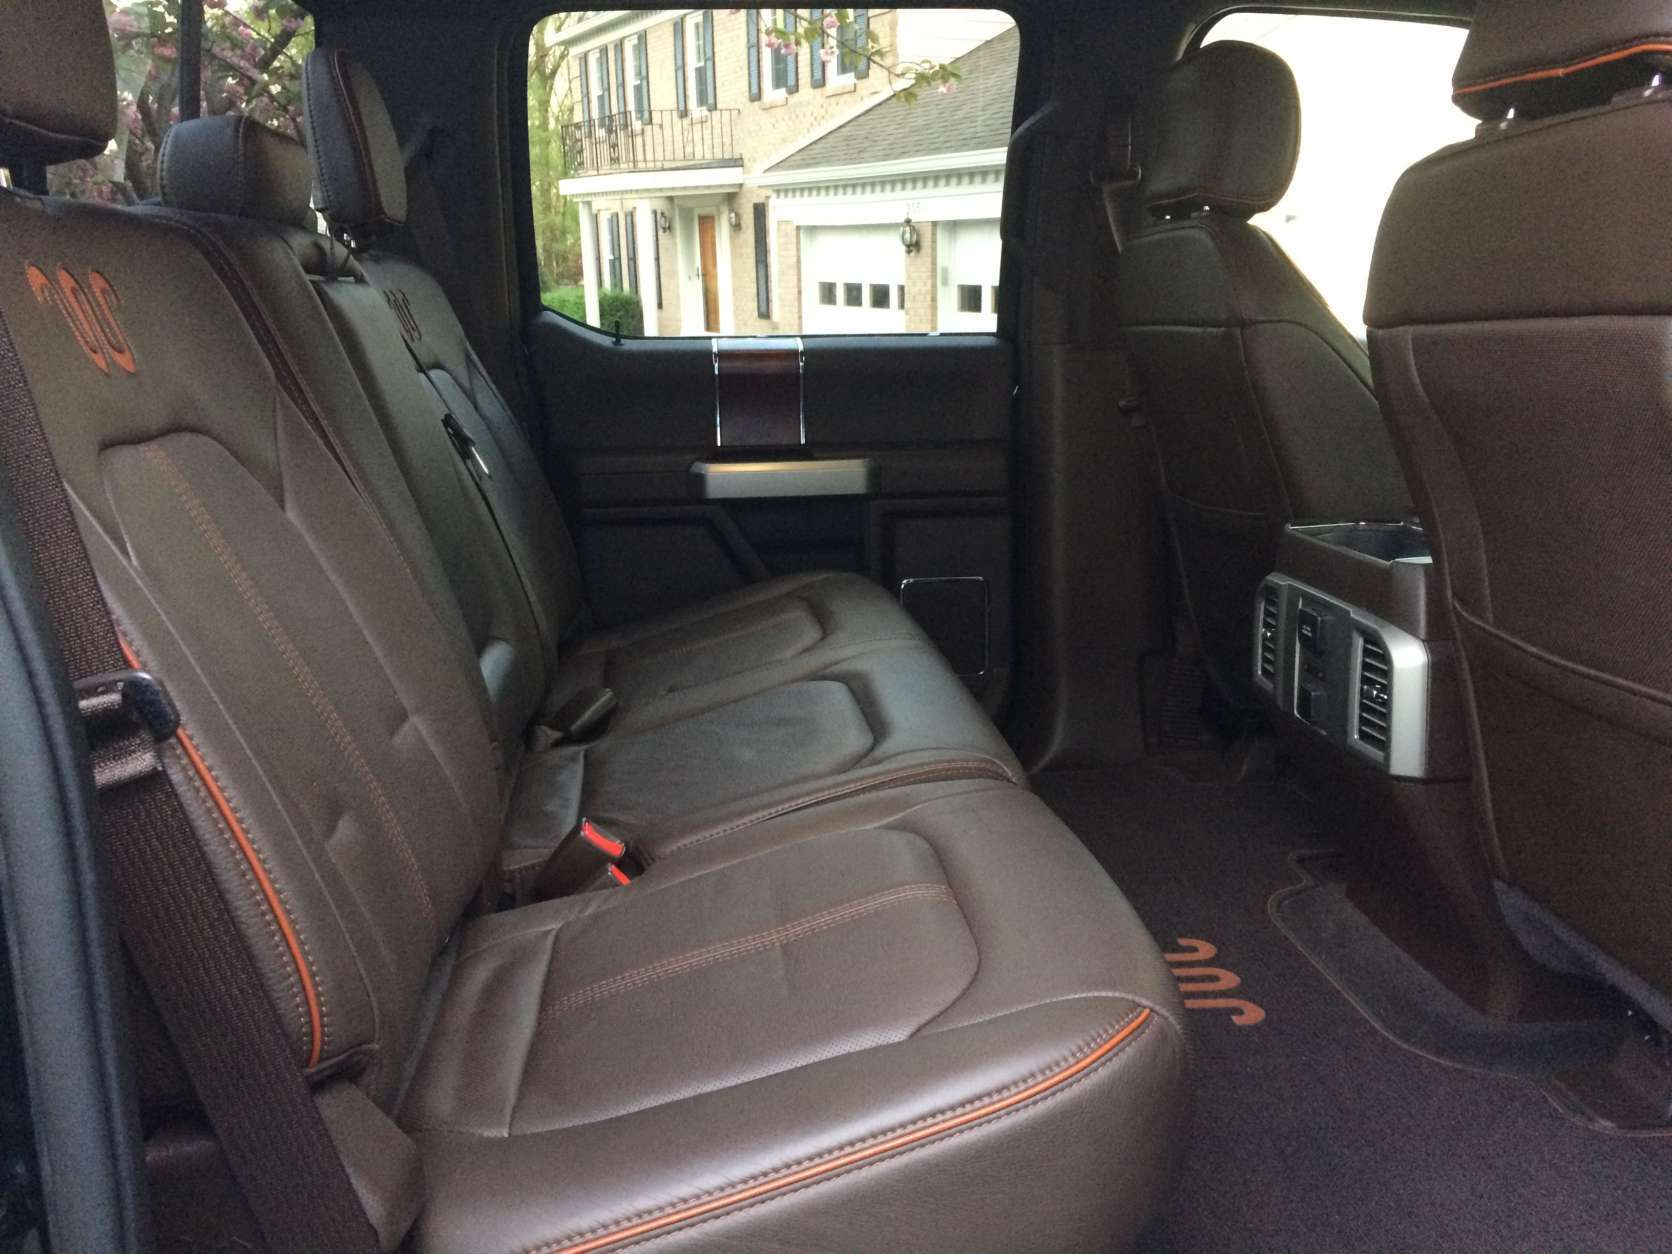 The back seats have plenty of space for three adults with ample leg and head room. (WTOP/Mike Parris)